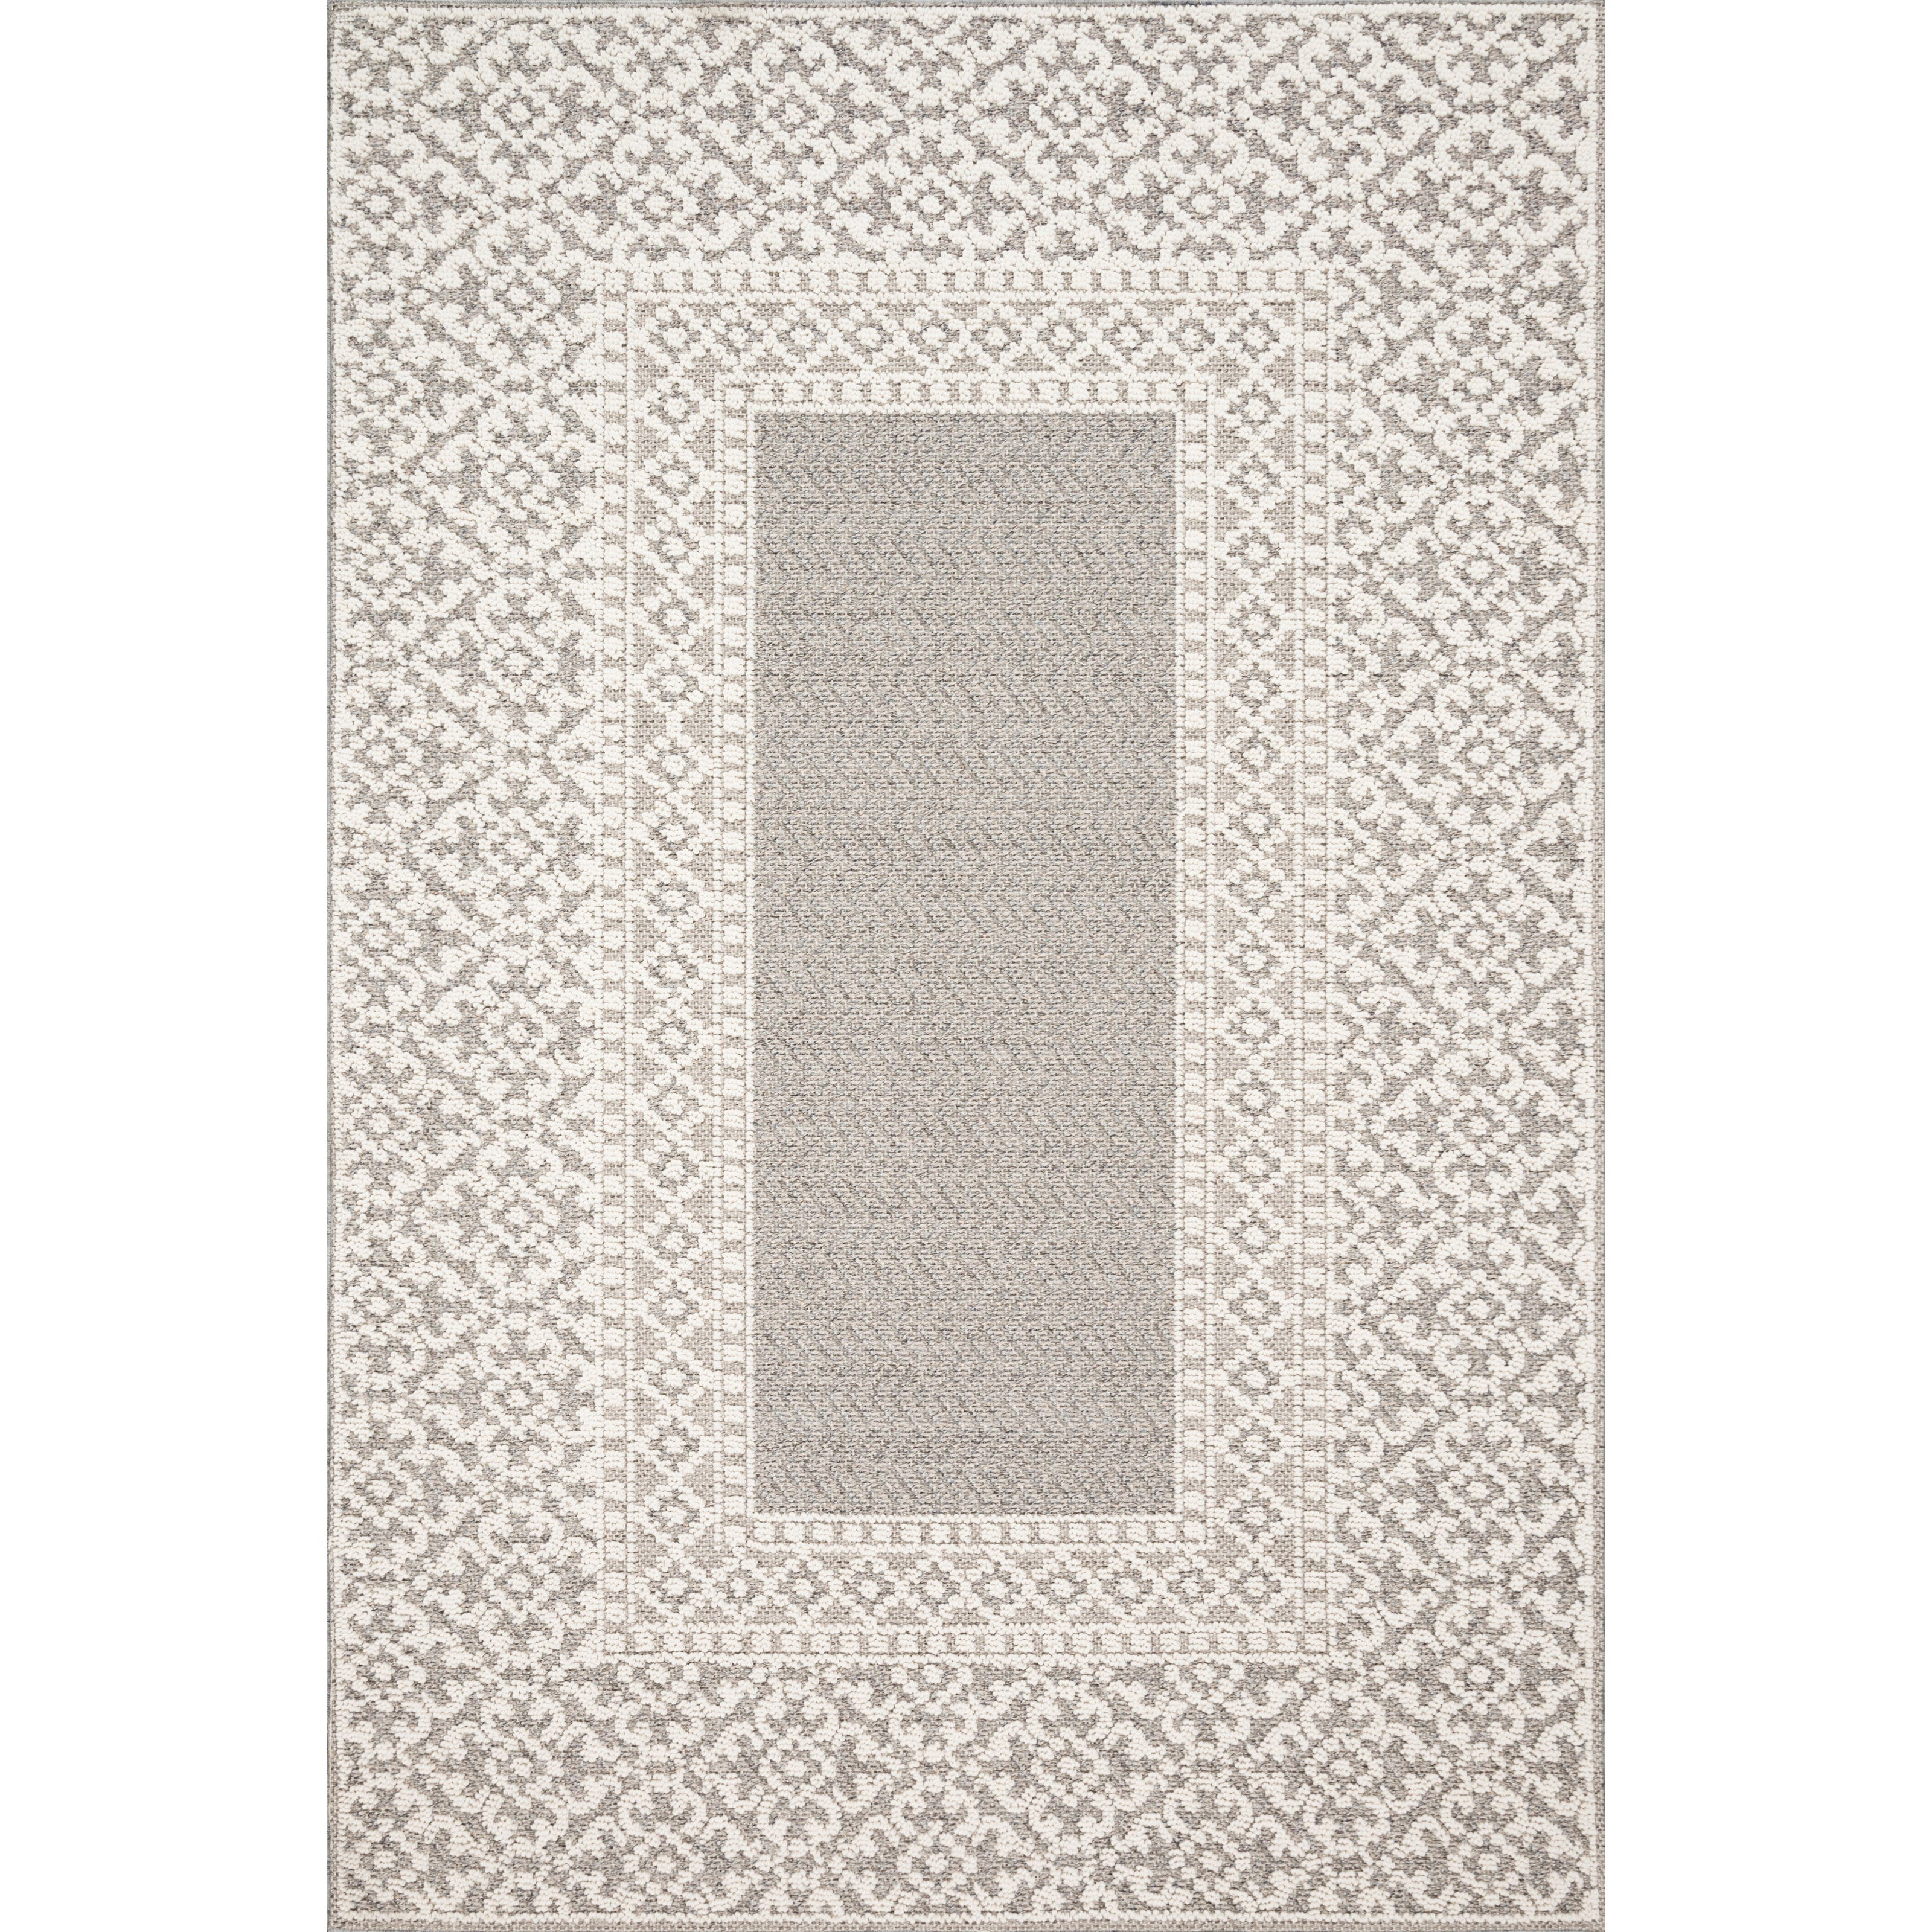 "Cole 7'10"" x 10'1"" Grey / Ivory Rug by Loloi Rugs at Sprintz Furniture"